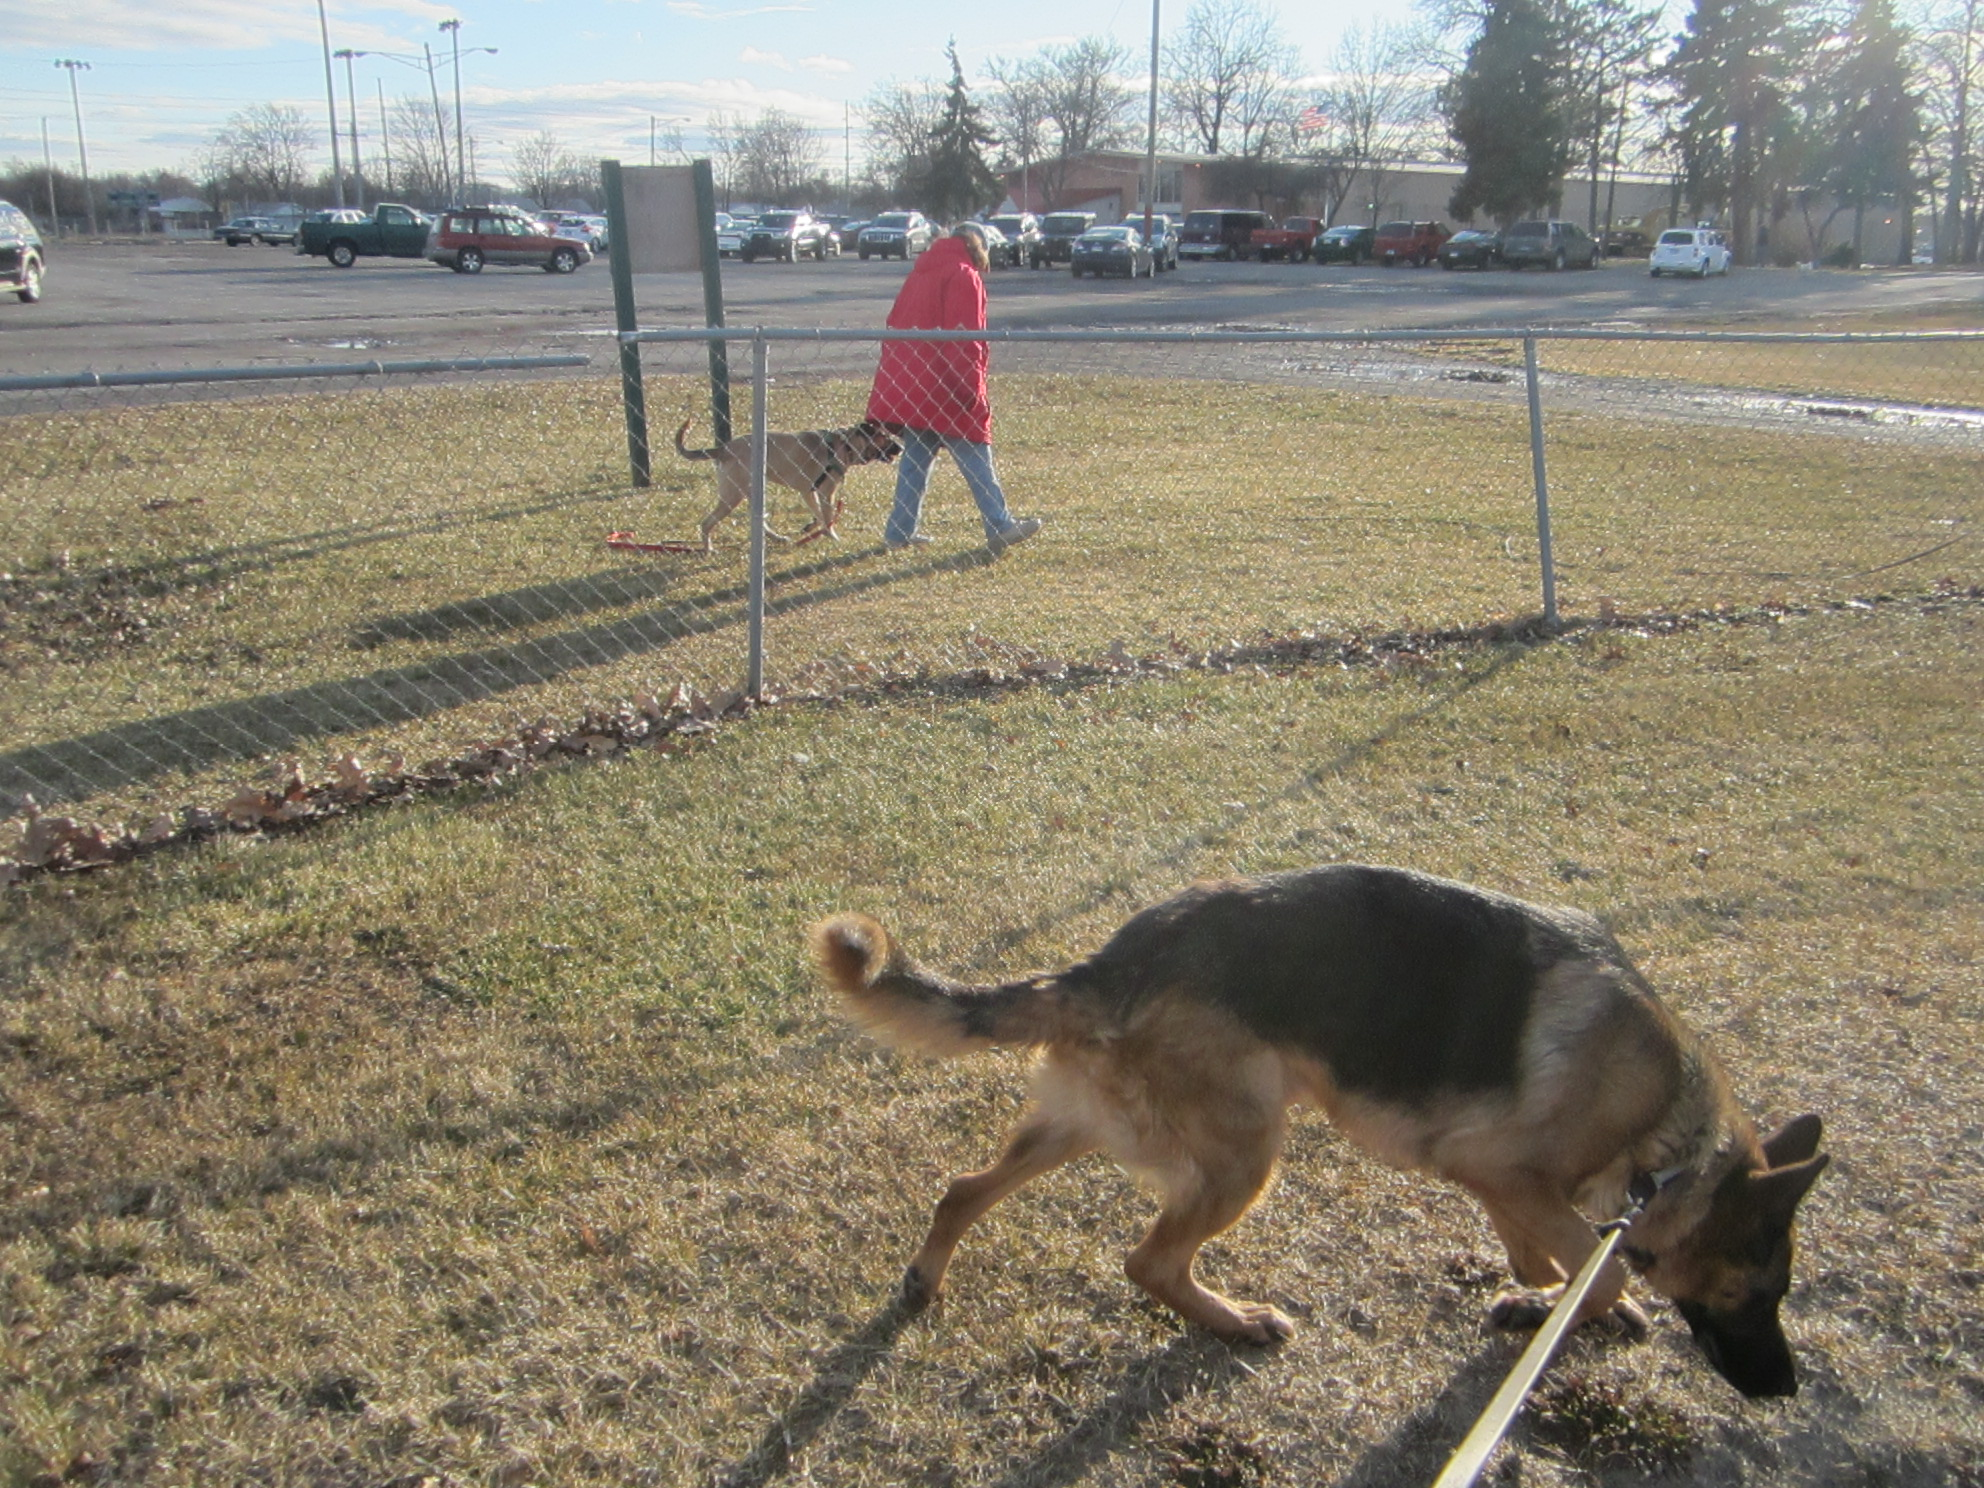 Wagging Tail May Indicate Dog Aggression